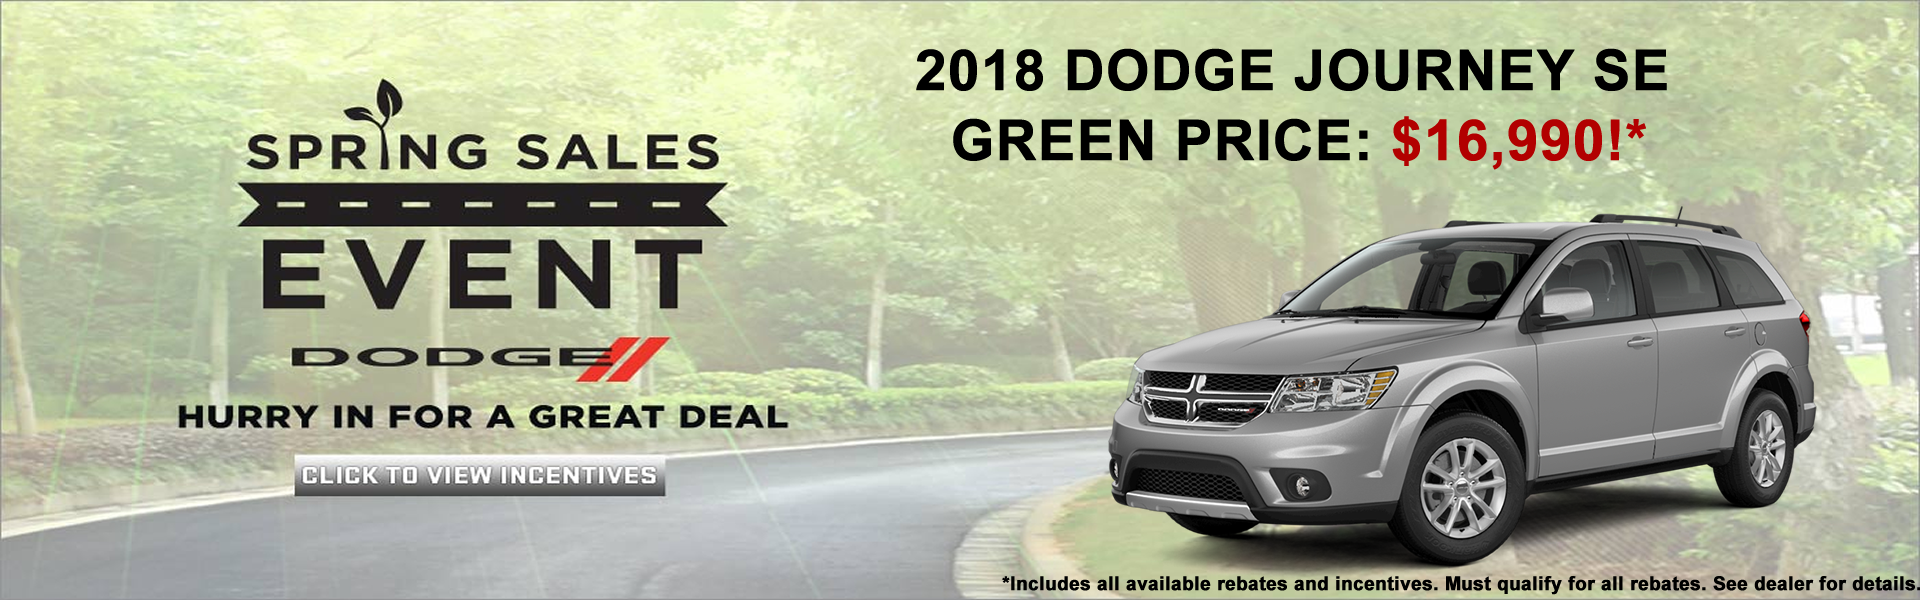 Dodge Journey Sales